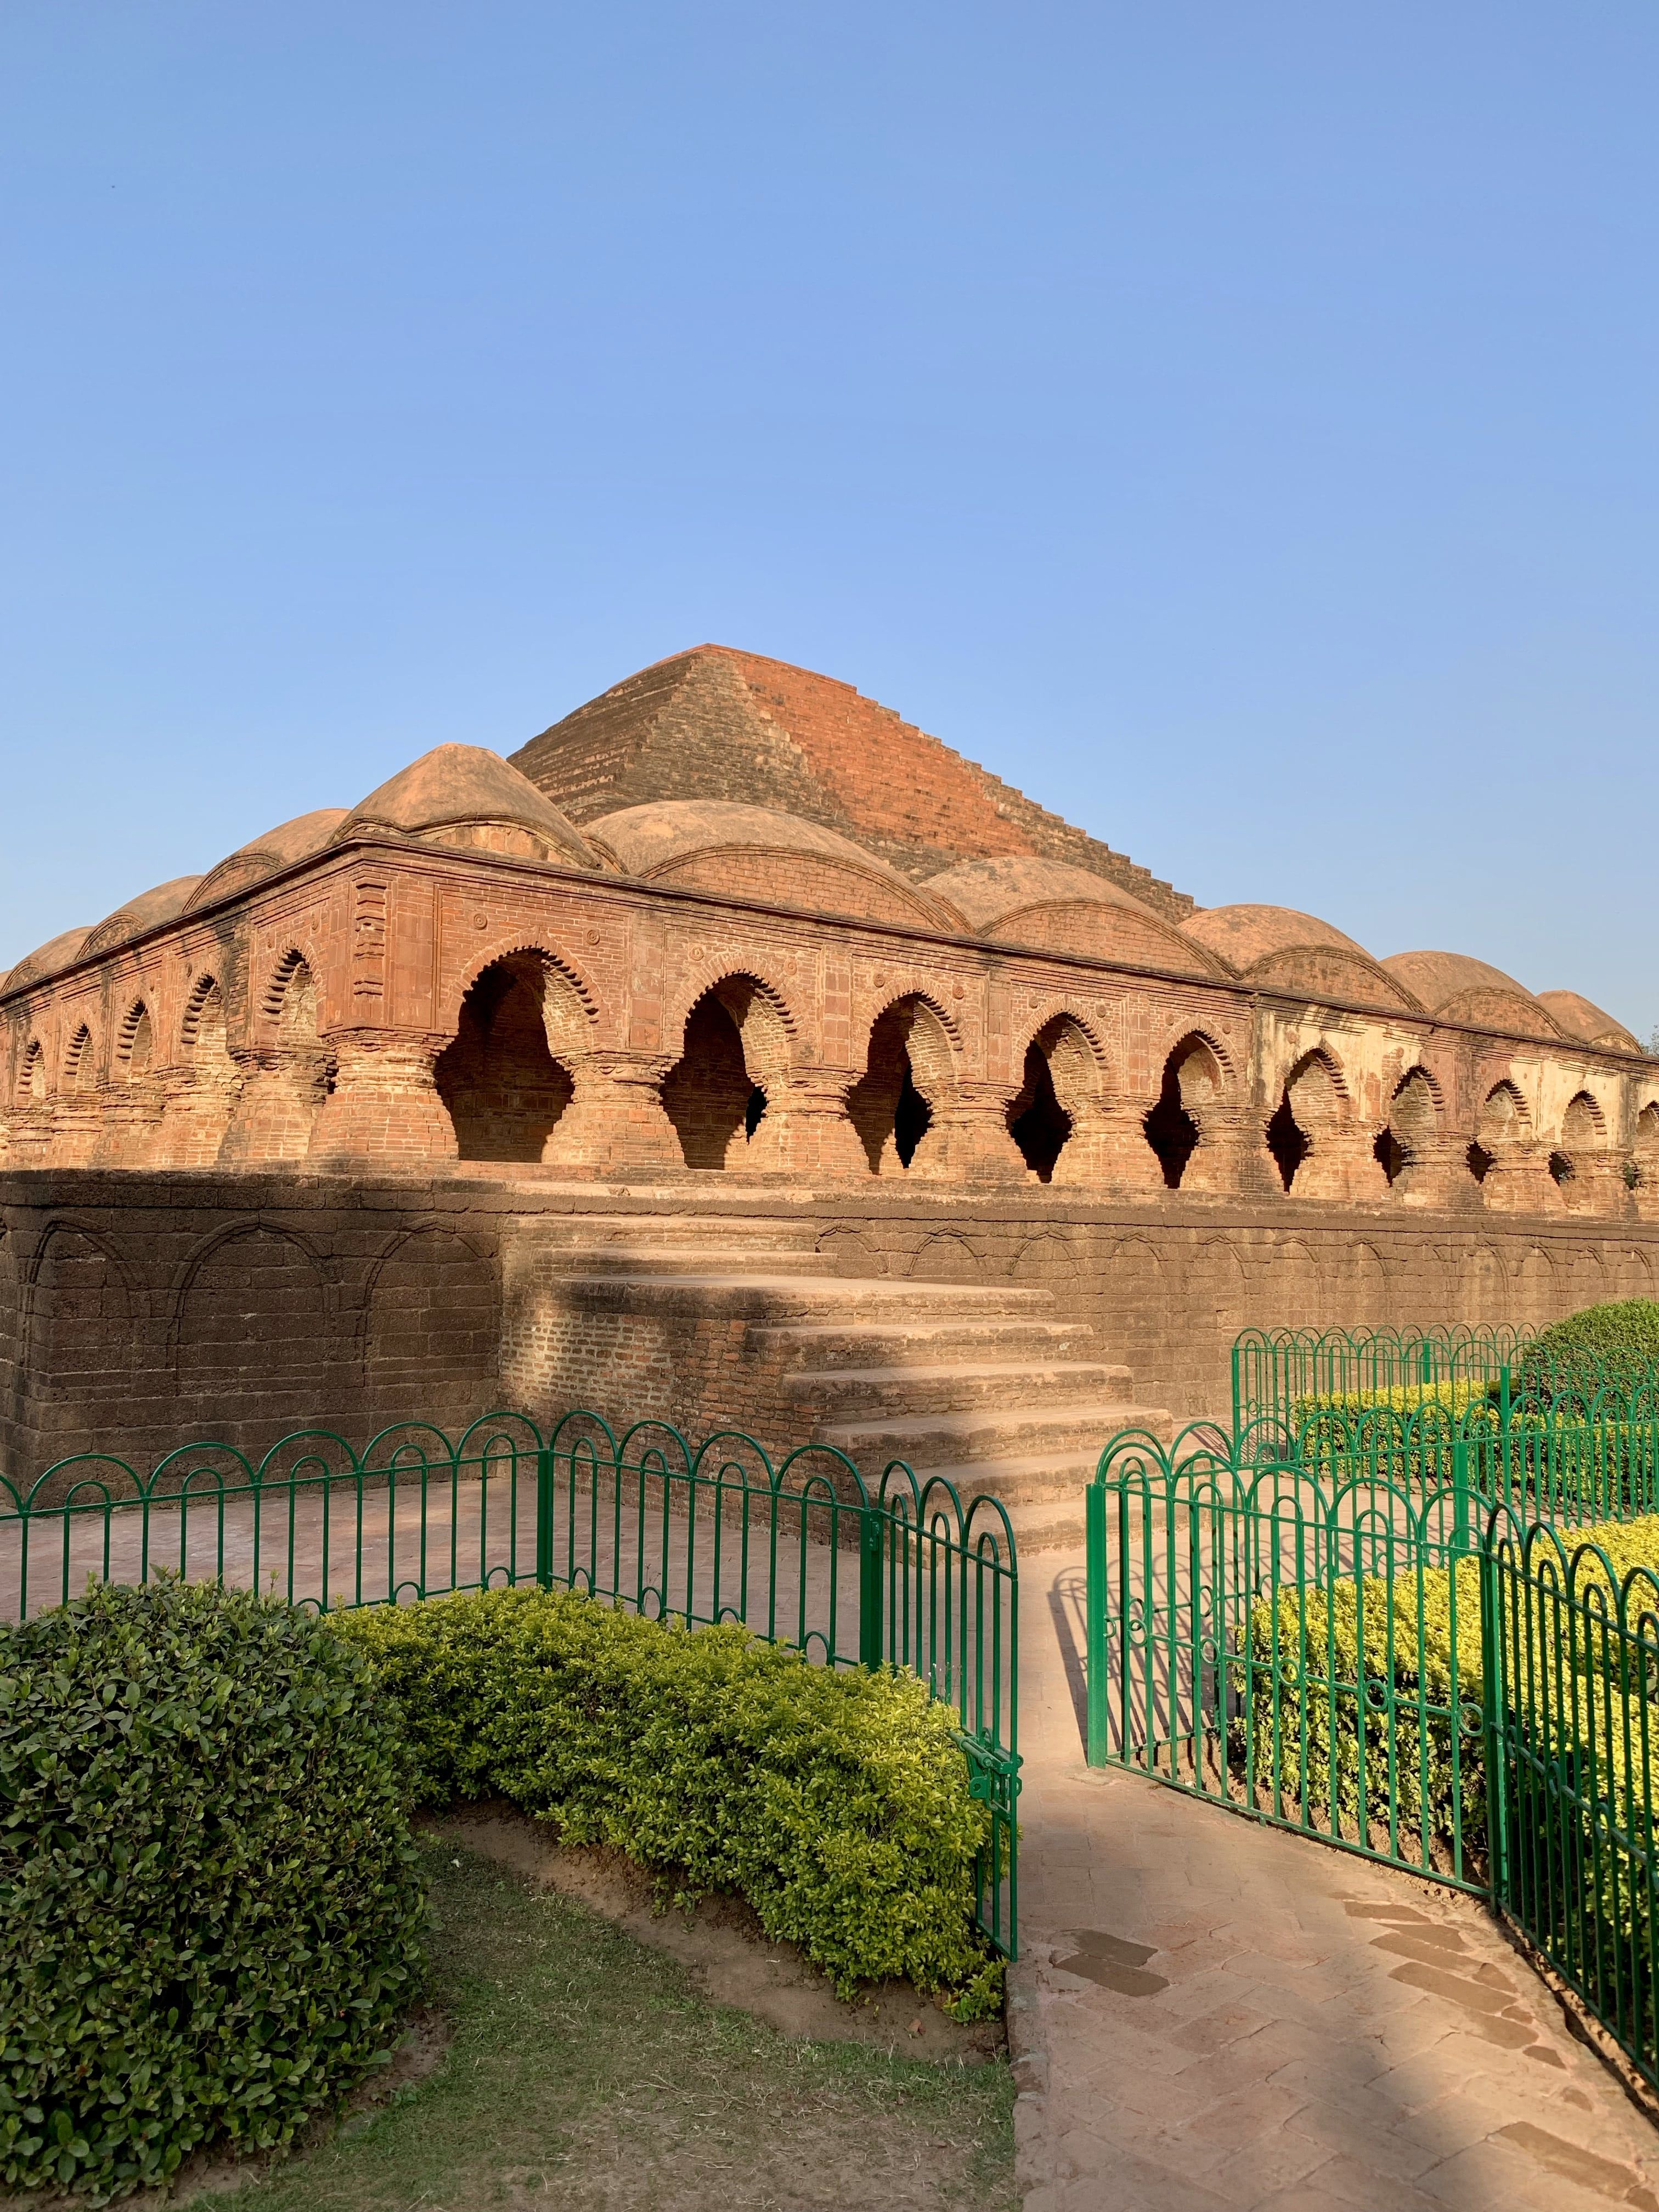 Bishnupur Sightseeing: My Solo Travel Experience as a Woman